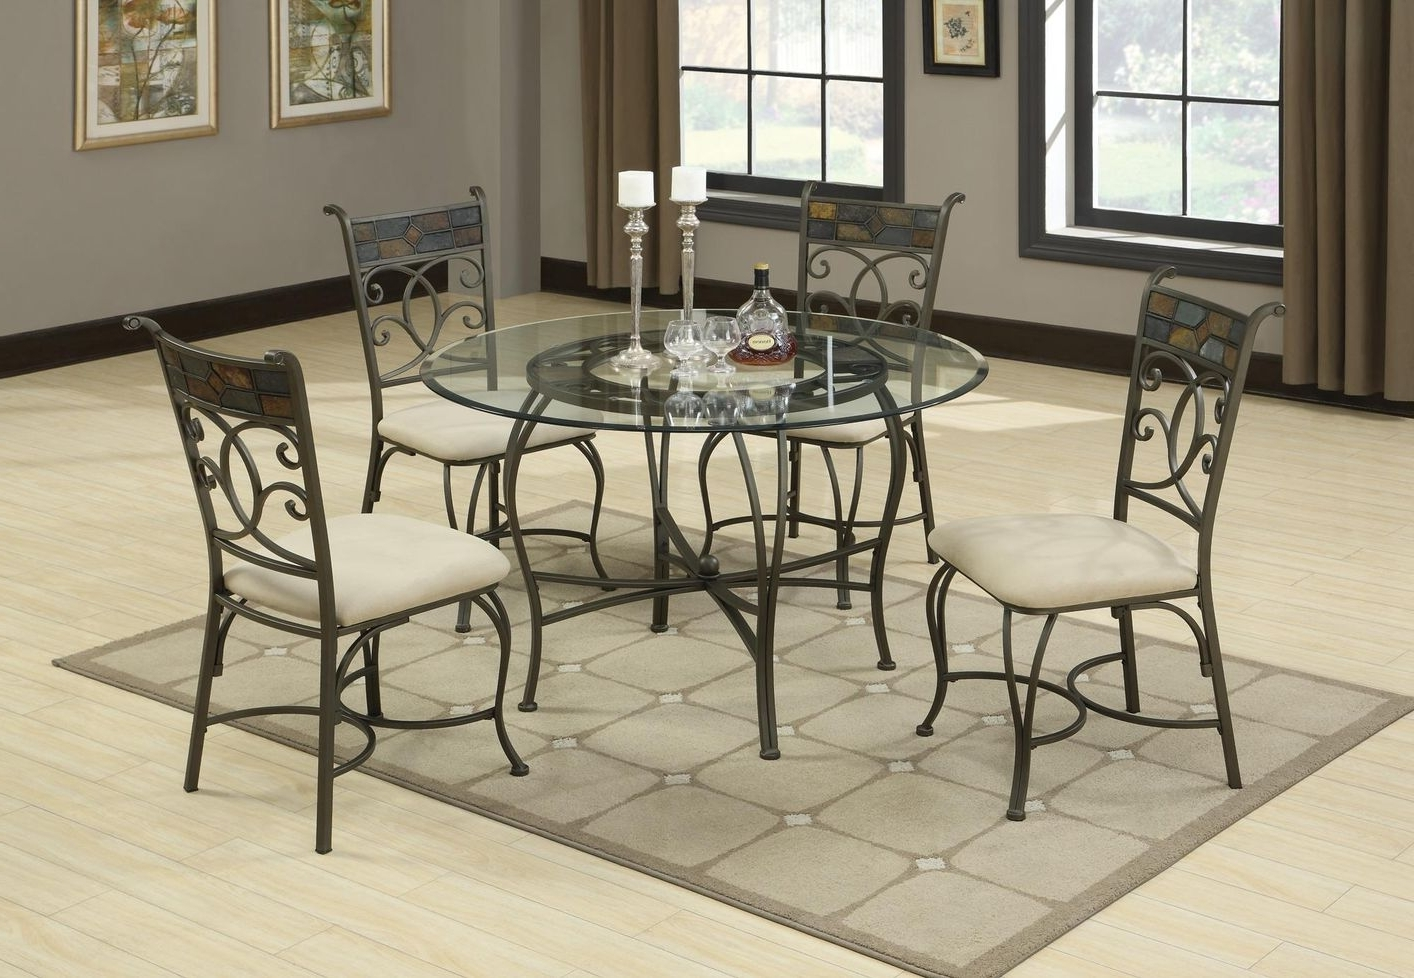 Grey Glass Dining Tables Regarding Recent Sheridan Grey Metal And Glass Dining Table – Steal A Sofa Furniture (View 12 of 25)